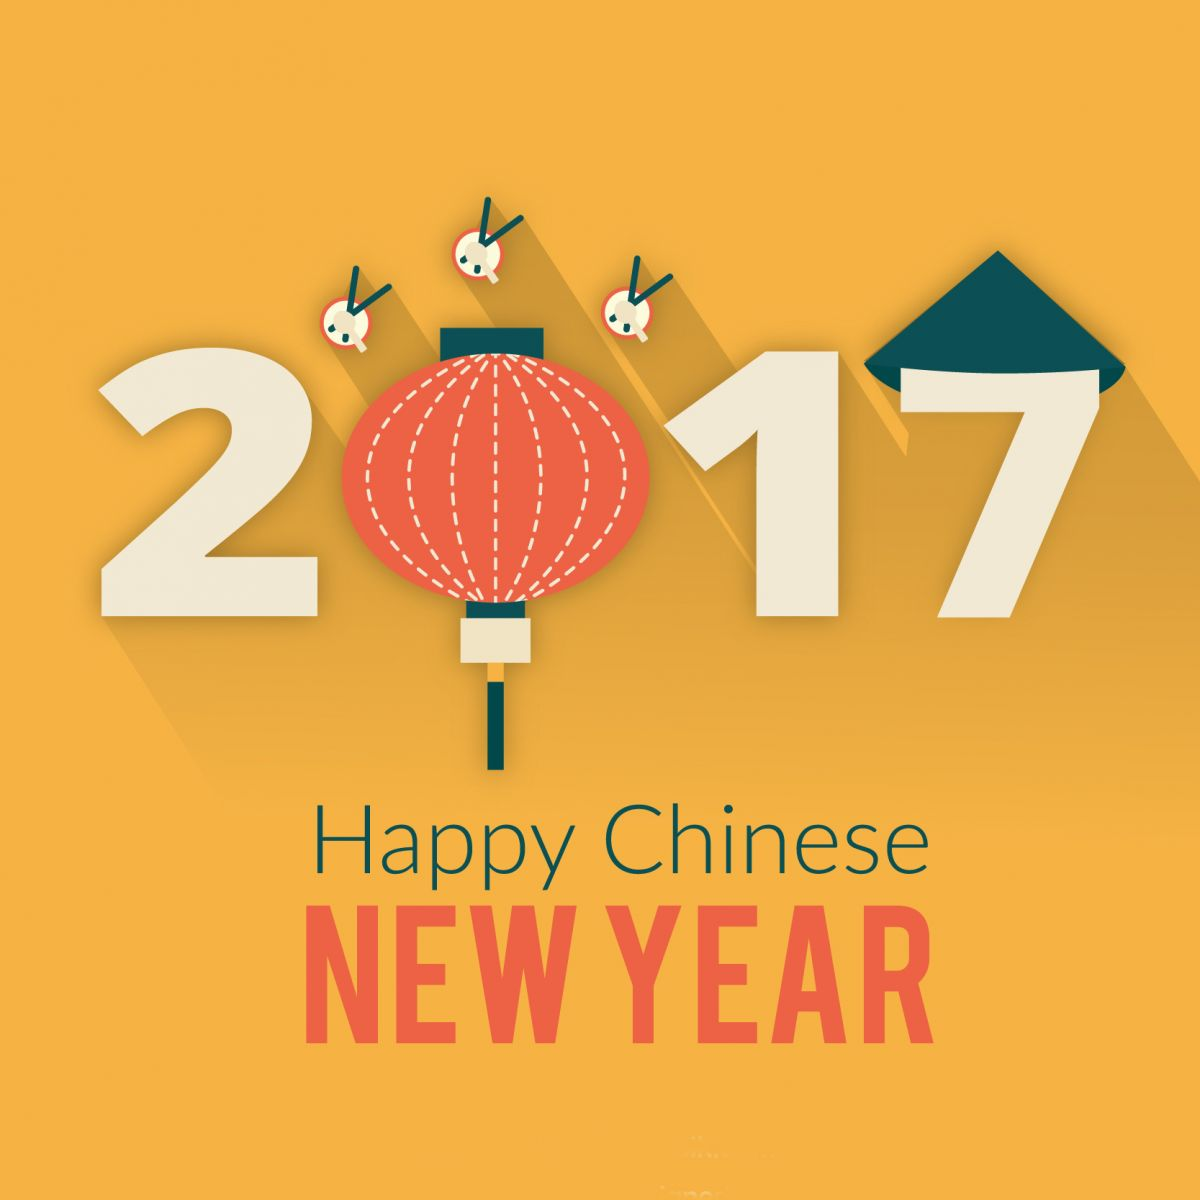 Chinese New Year Greetings From Formag Forwarding Formag Corporate